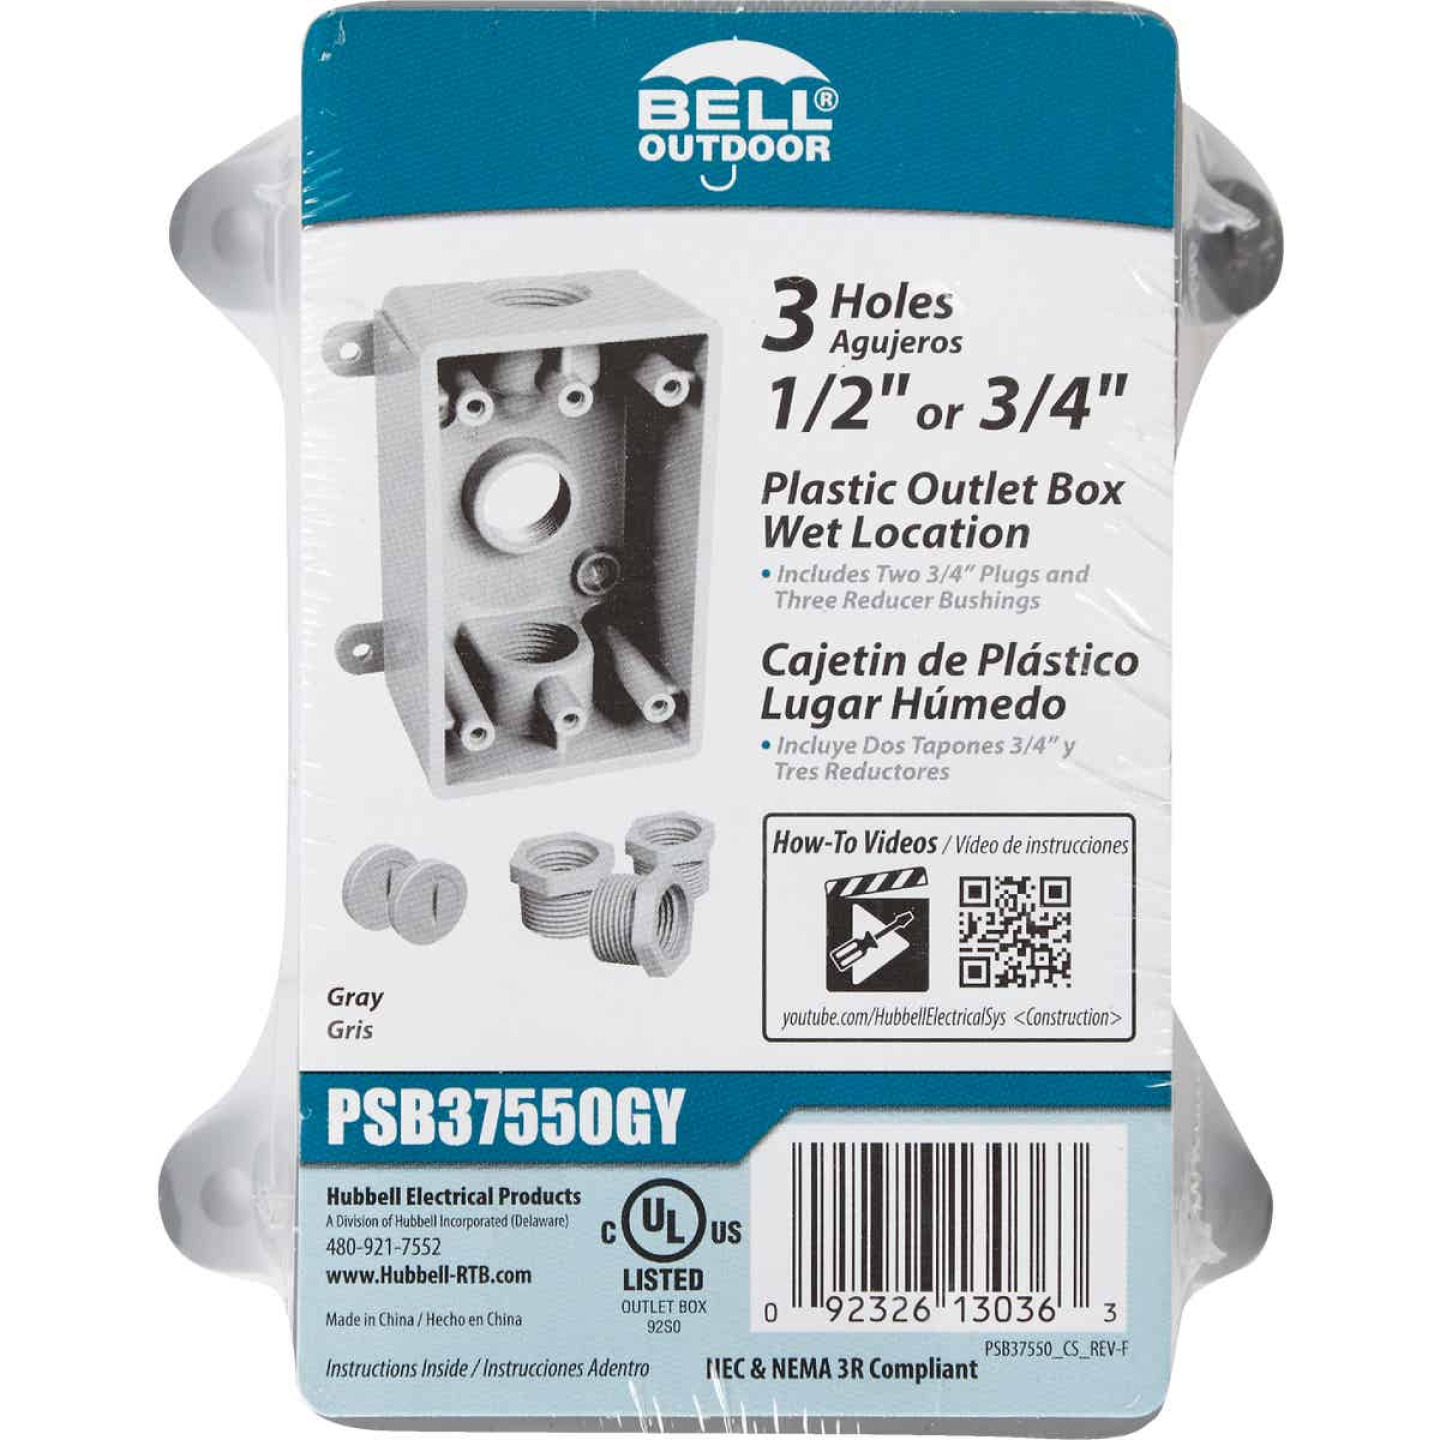 Bell Single Gang 1/2 In.,3/4 In. 3-Outlet Gray PVC Weatherproof Outdoor Outlet Box Image 2